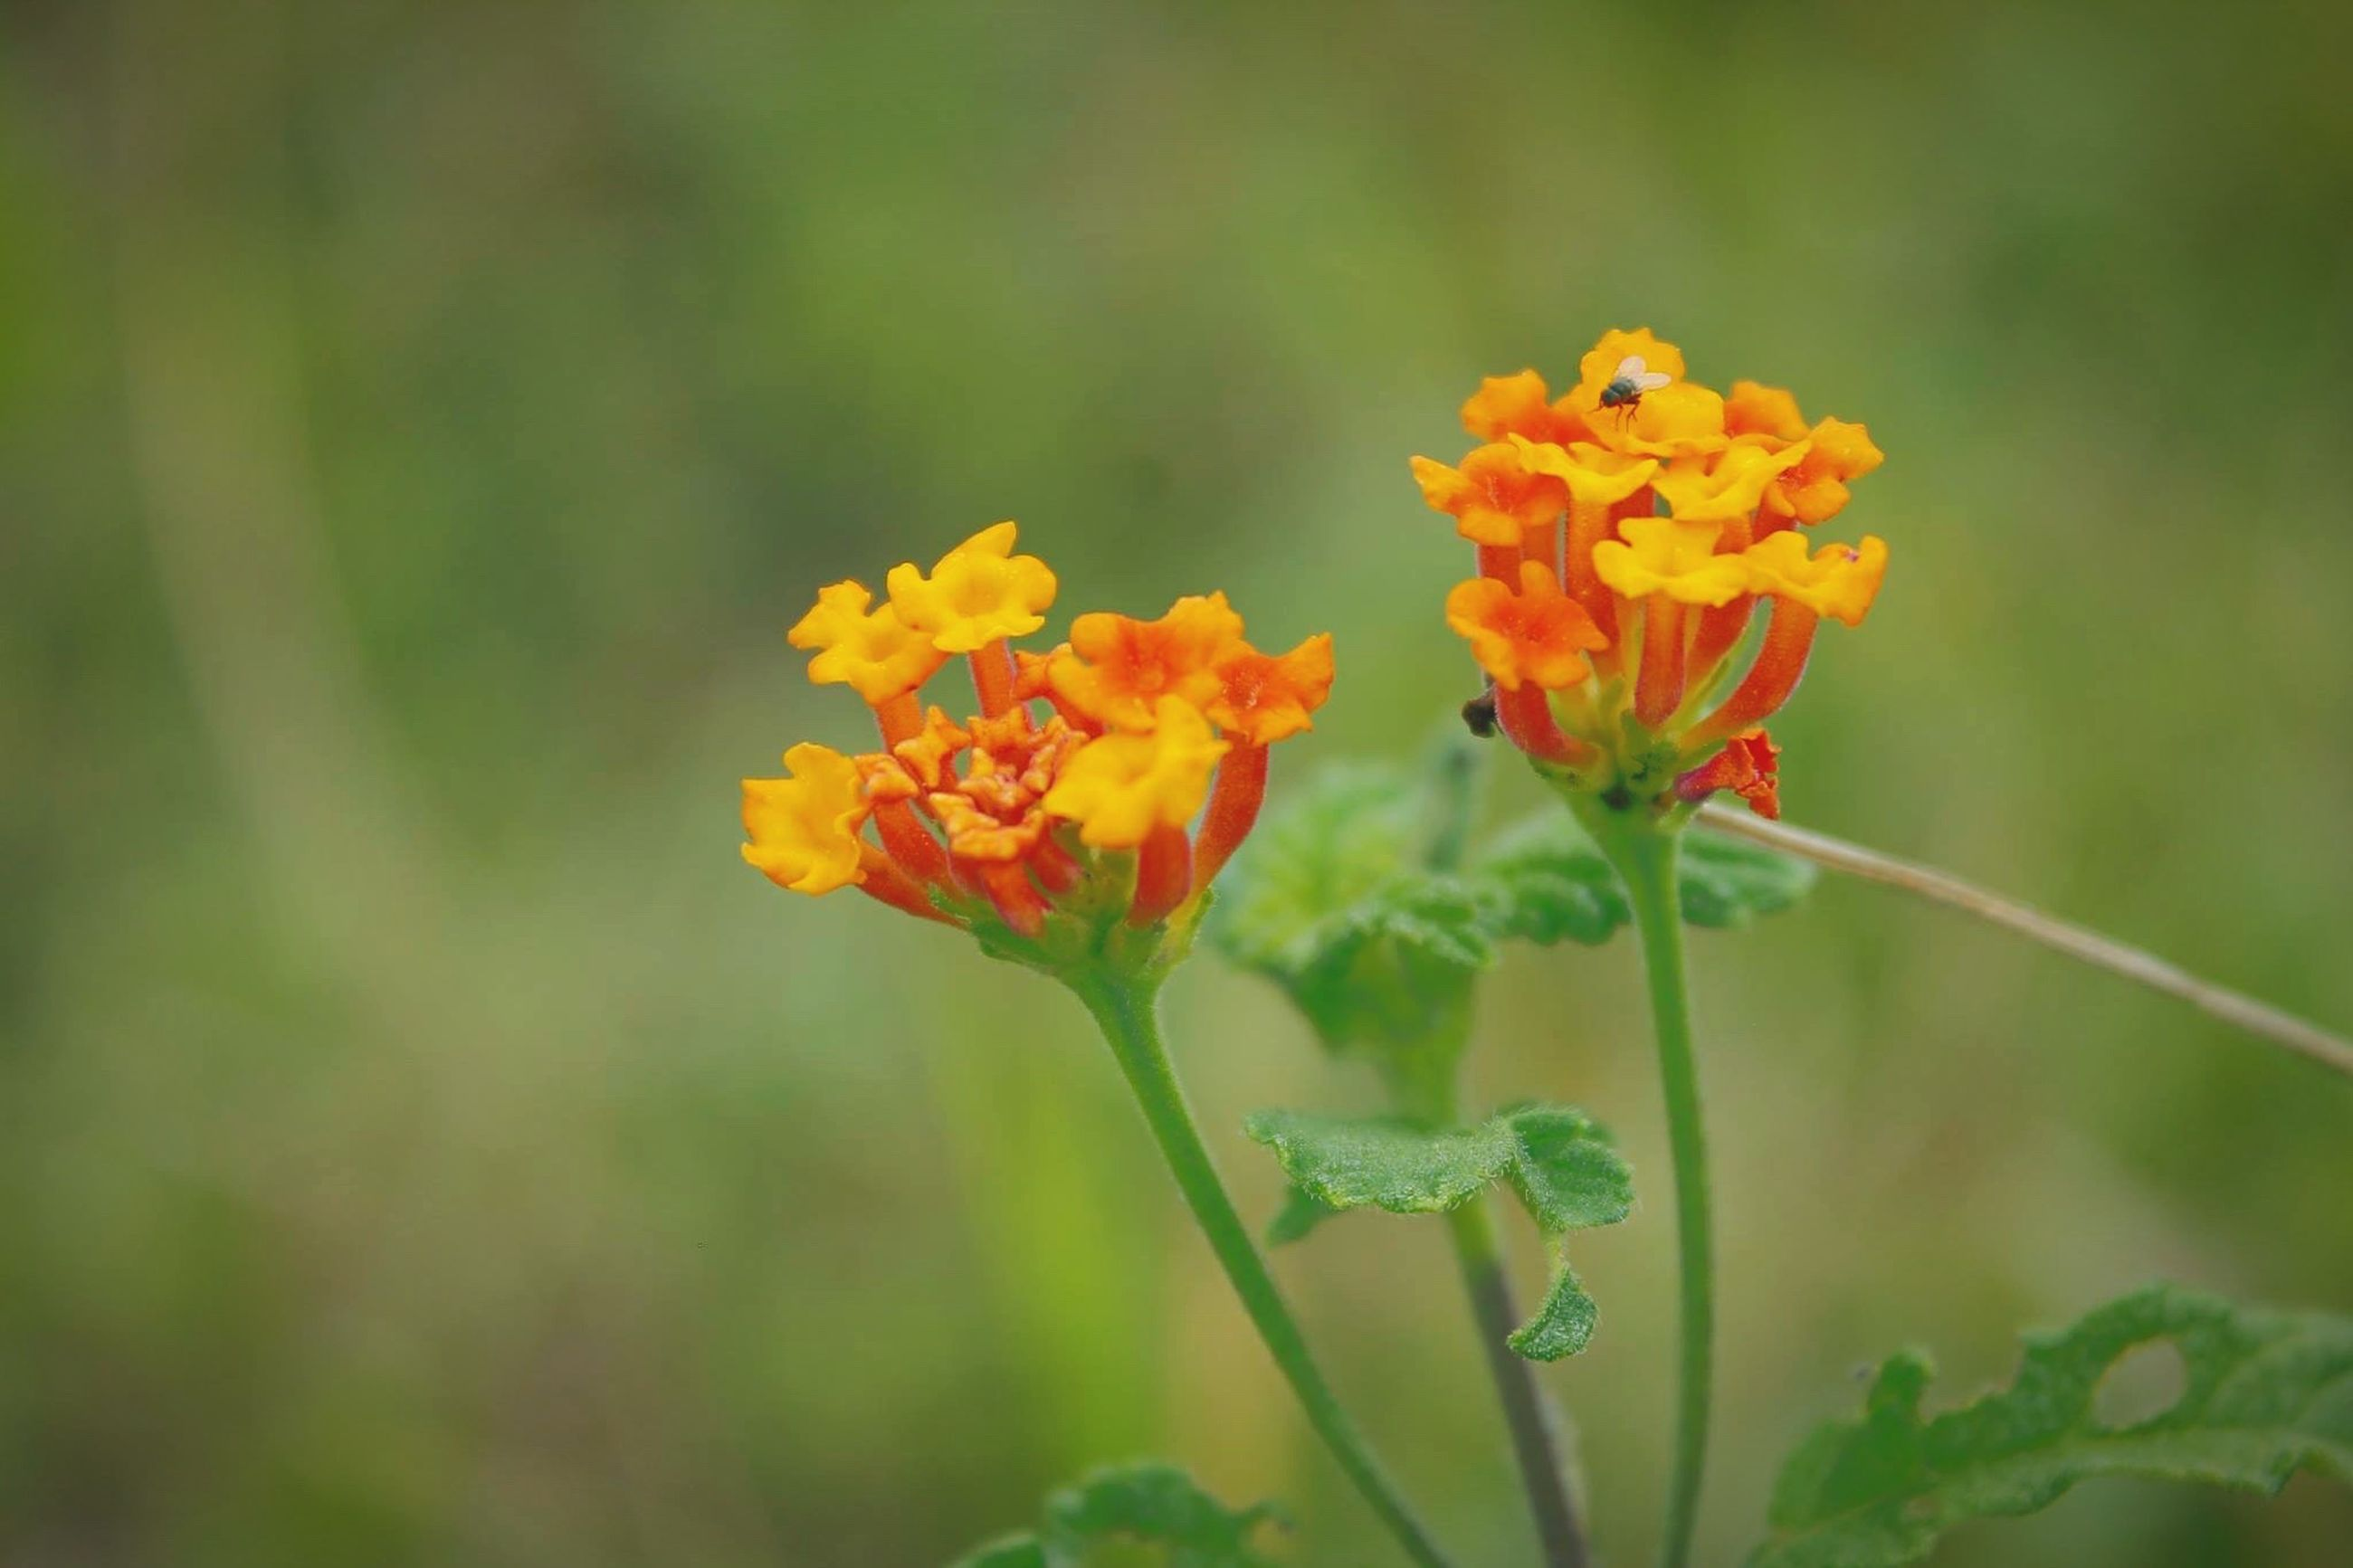 flower, petal, freshness, fragility, growth, flower head, focus on foreground, yellow, beauty in nature, blooming, close-up, plant, nature, stem, orange color, in bloom, selective focus, field, blossom, day